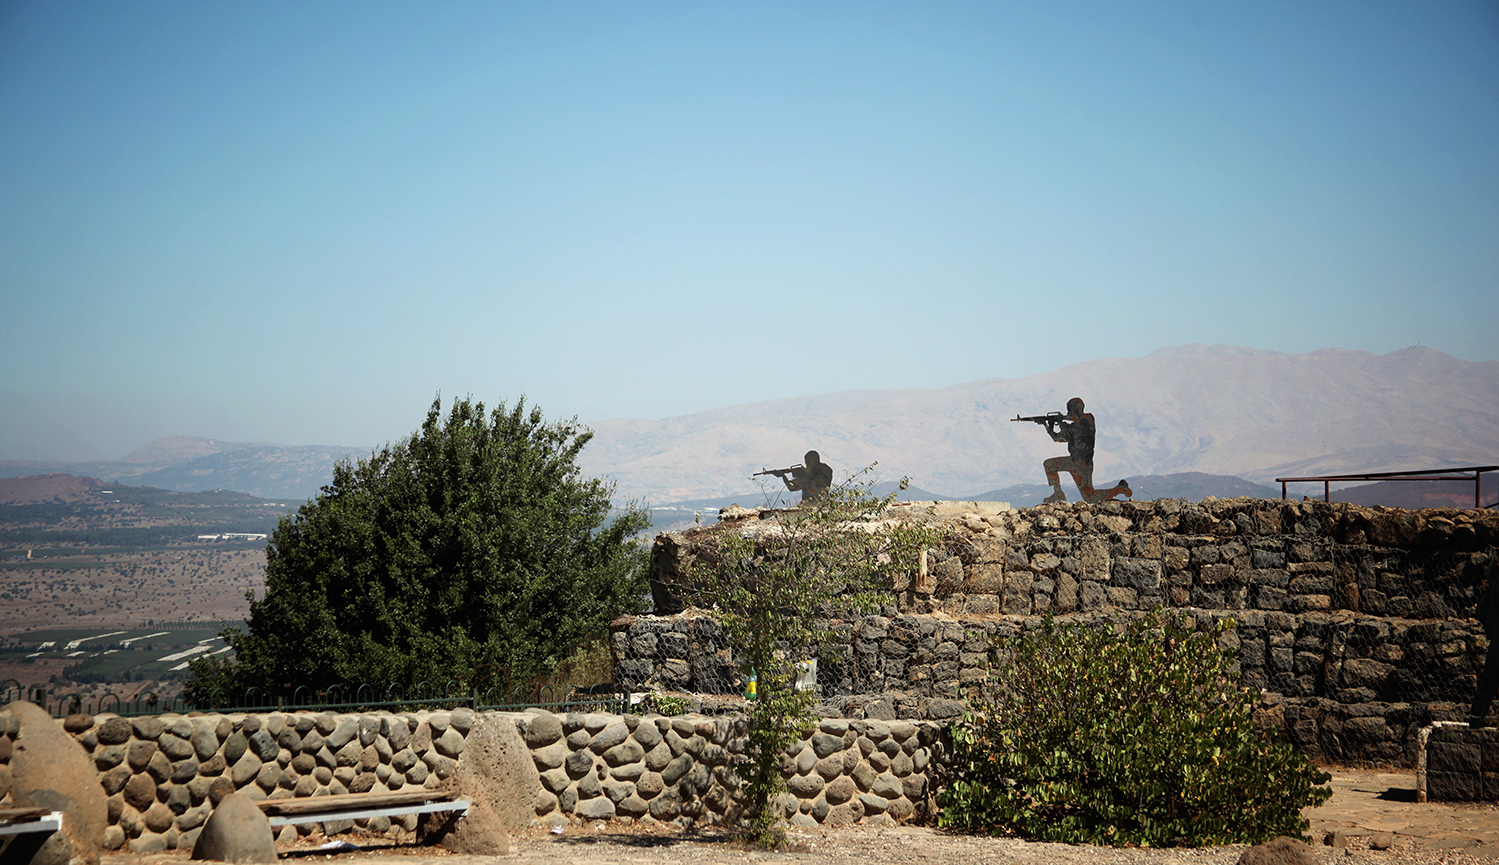 Military decoys at the top of the Golan Heights. Moment via Getty Images.